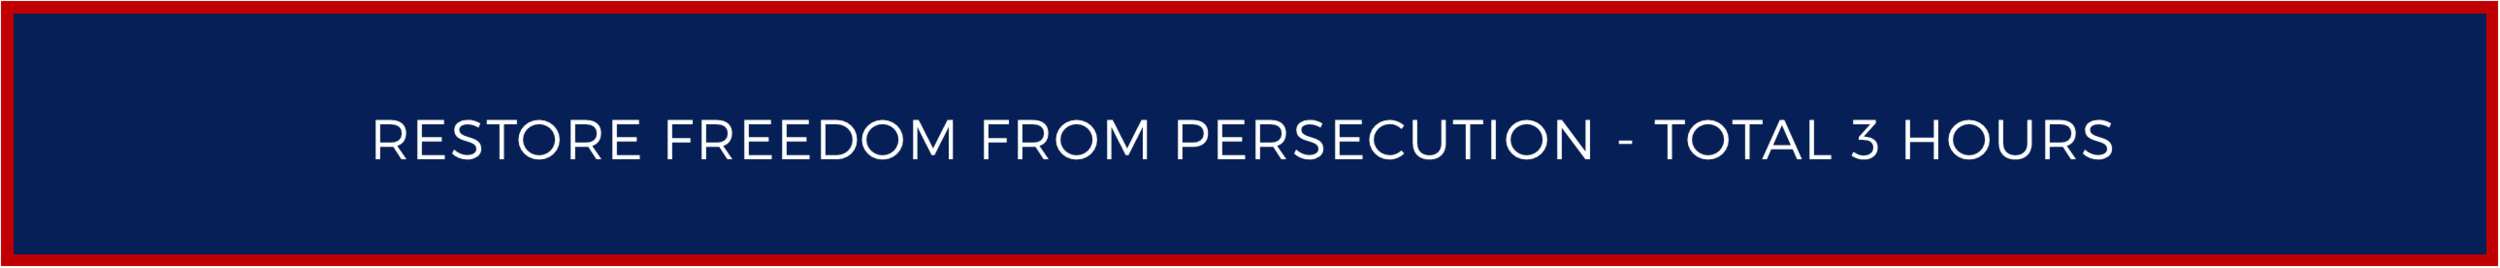 Restore Freedom From Persecution